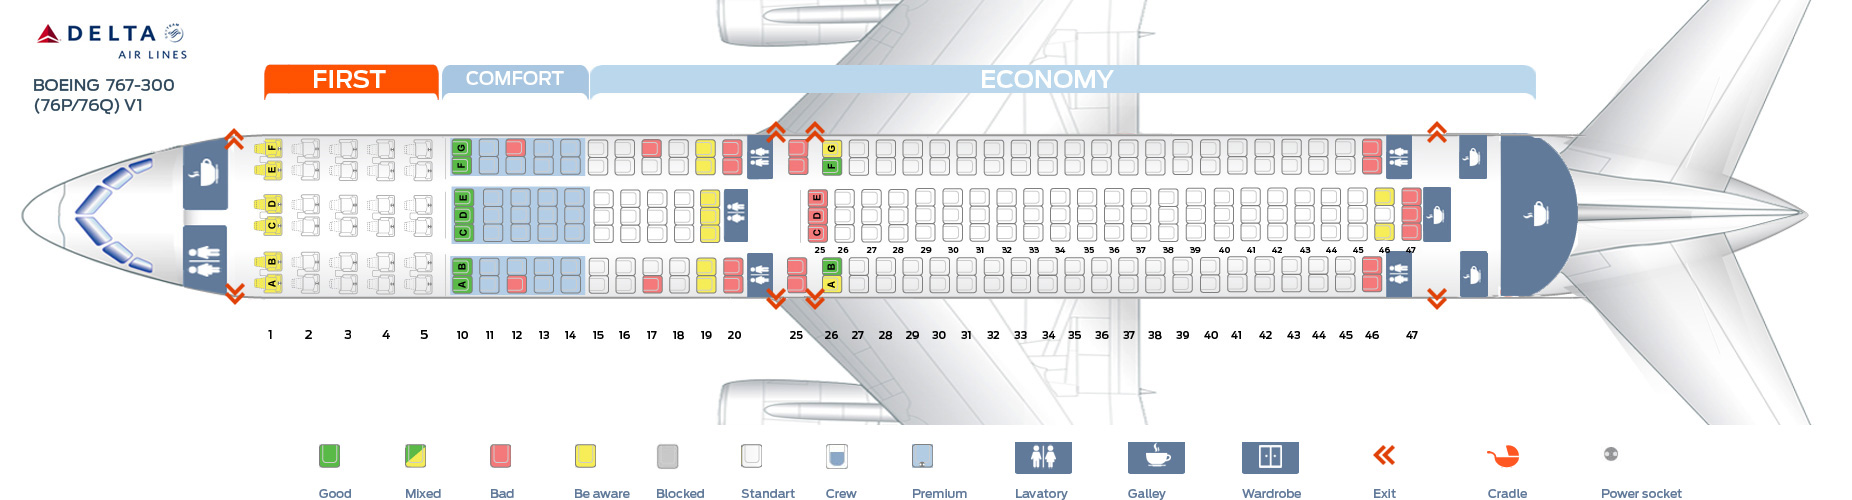 Delta Boeing 767 Seating Chart Bing Images